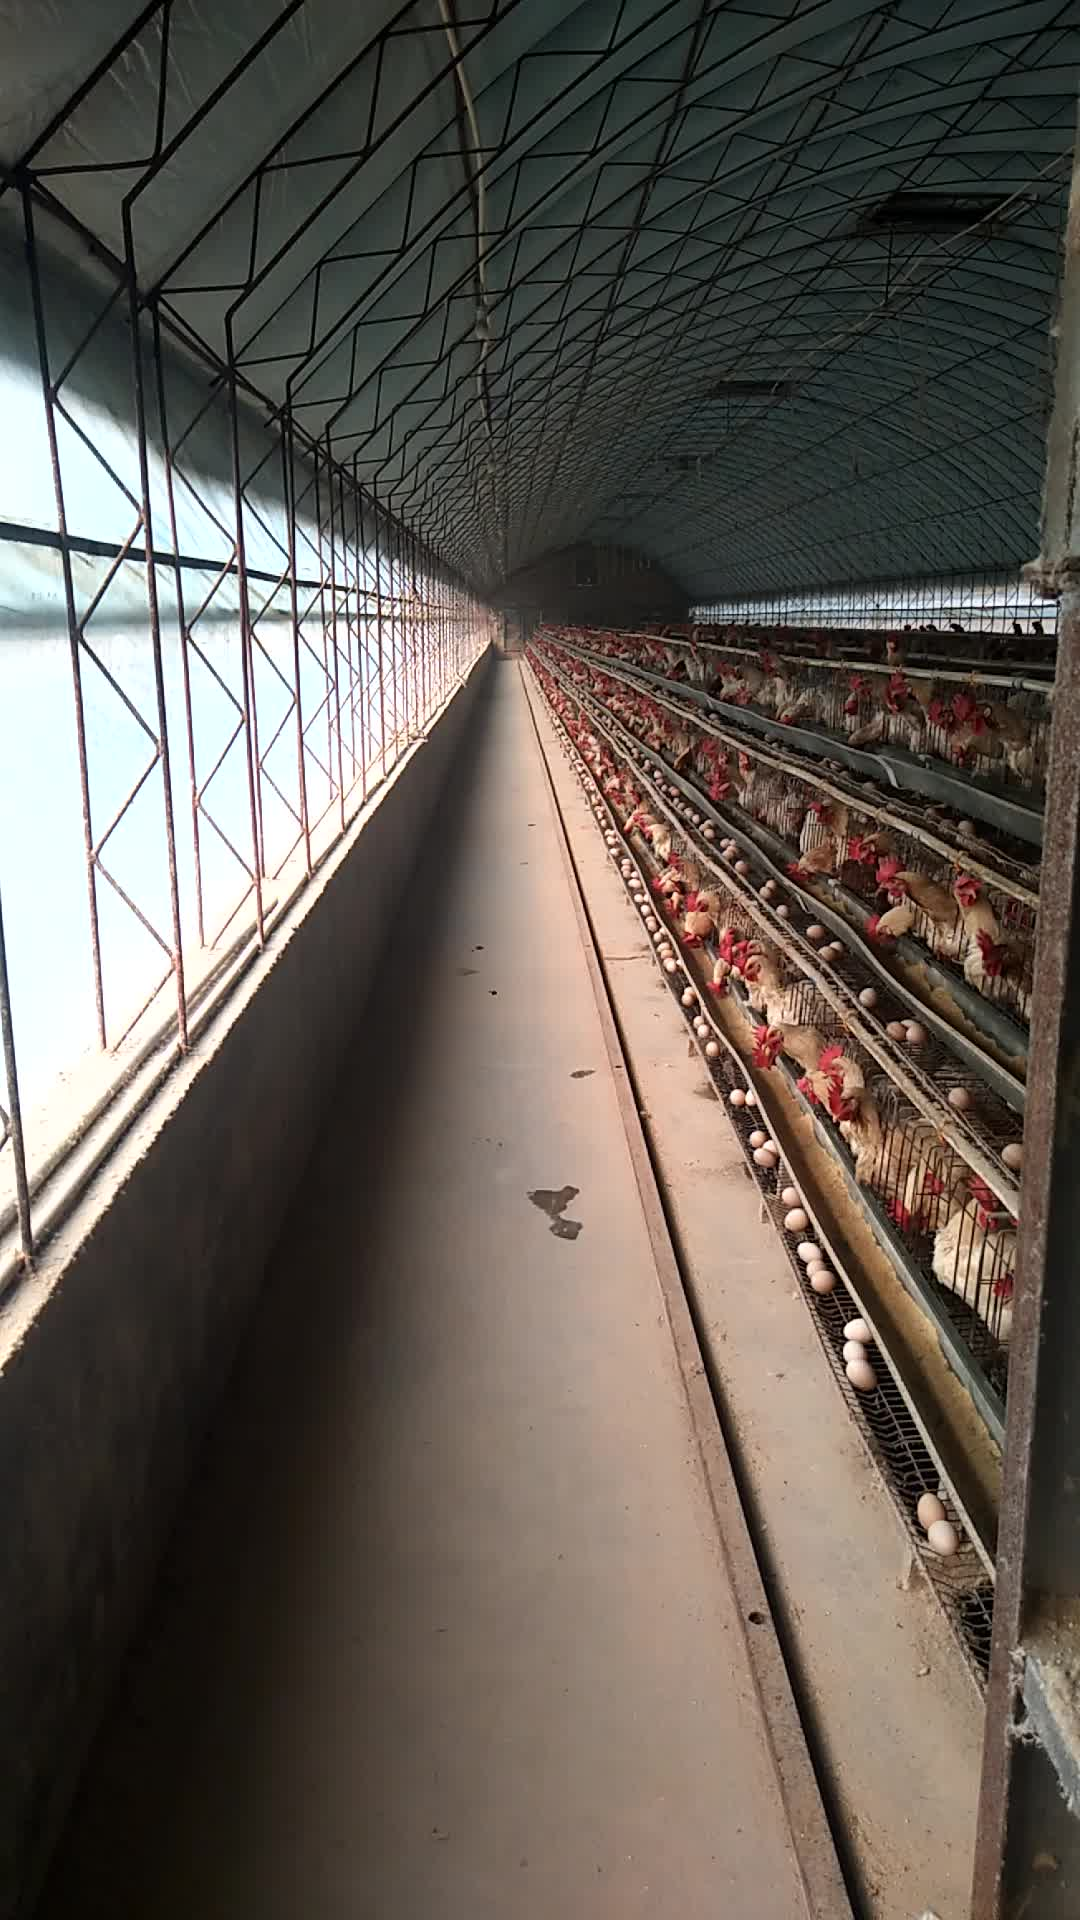 Low price battery egg chicken farm cages laying hens